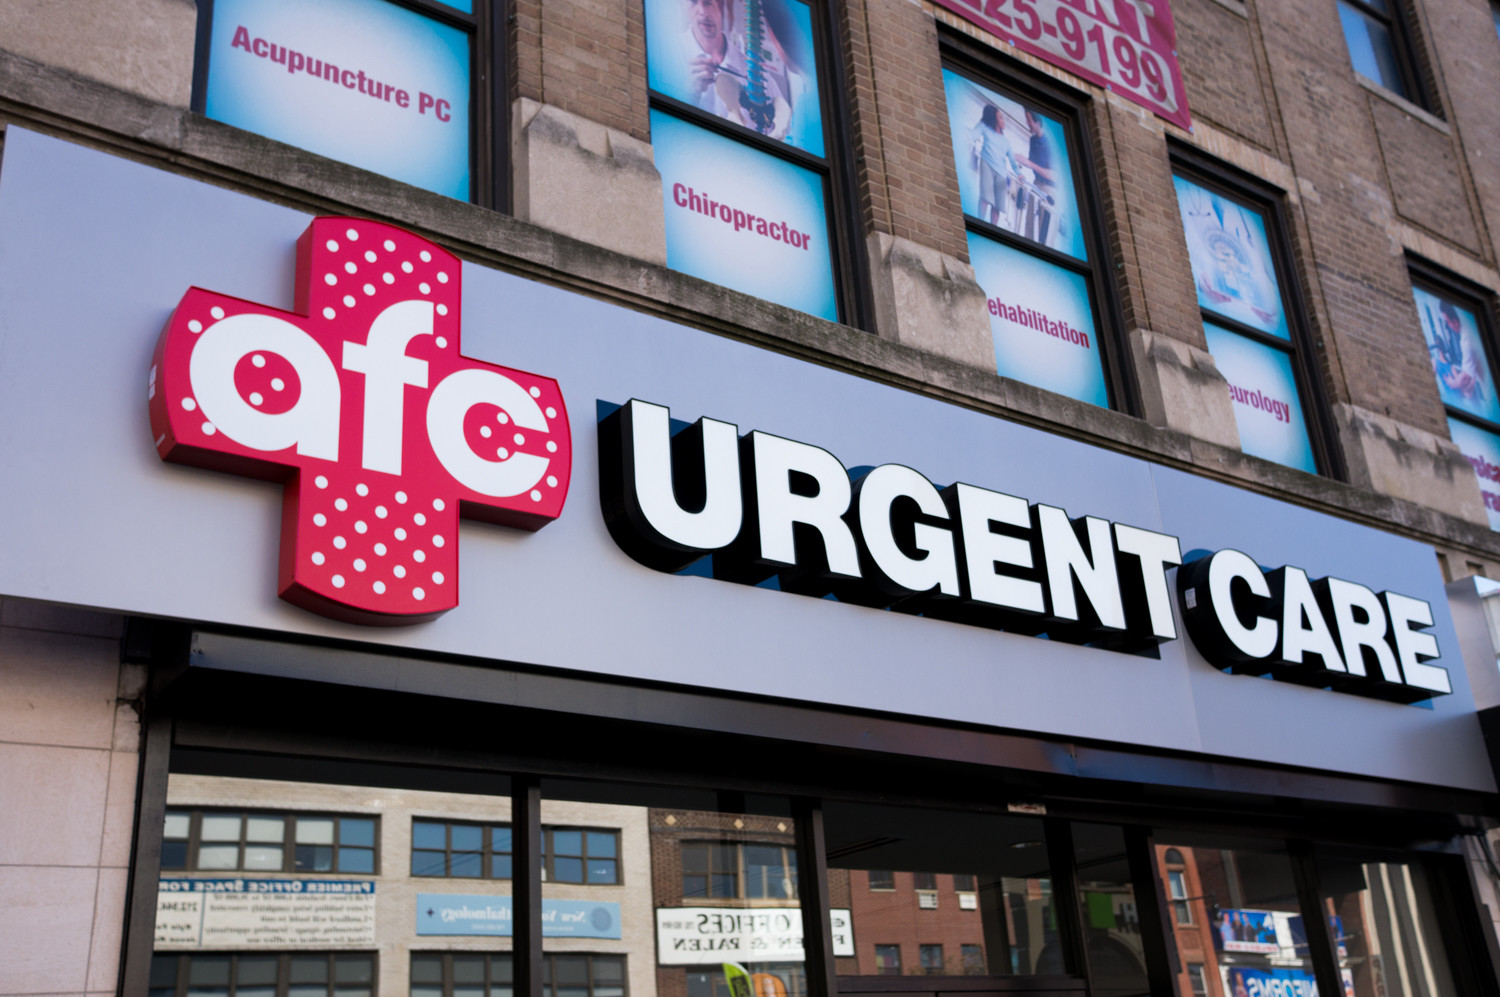 AFC Urgent Care Bronx will open a new location on Broadway, joining two other borough locations at 843 Hutchinson River Parkway and 332 E. 149th St.